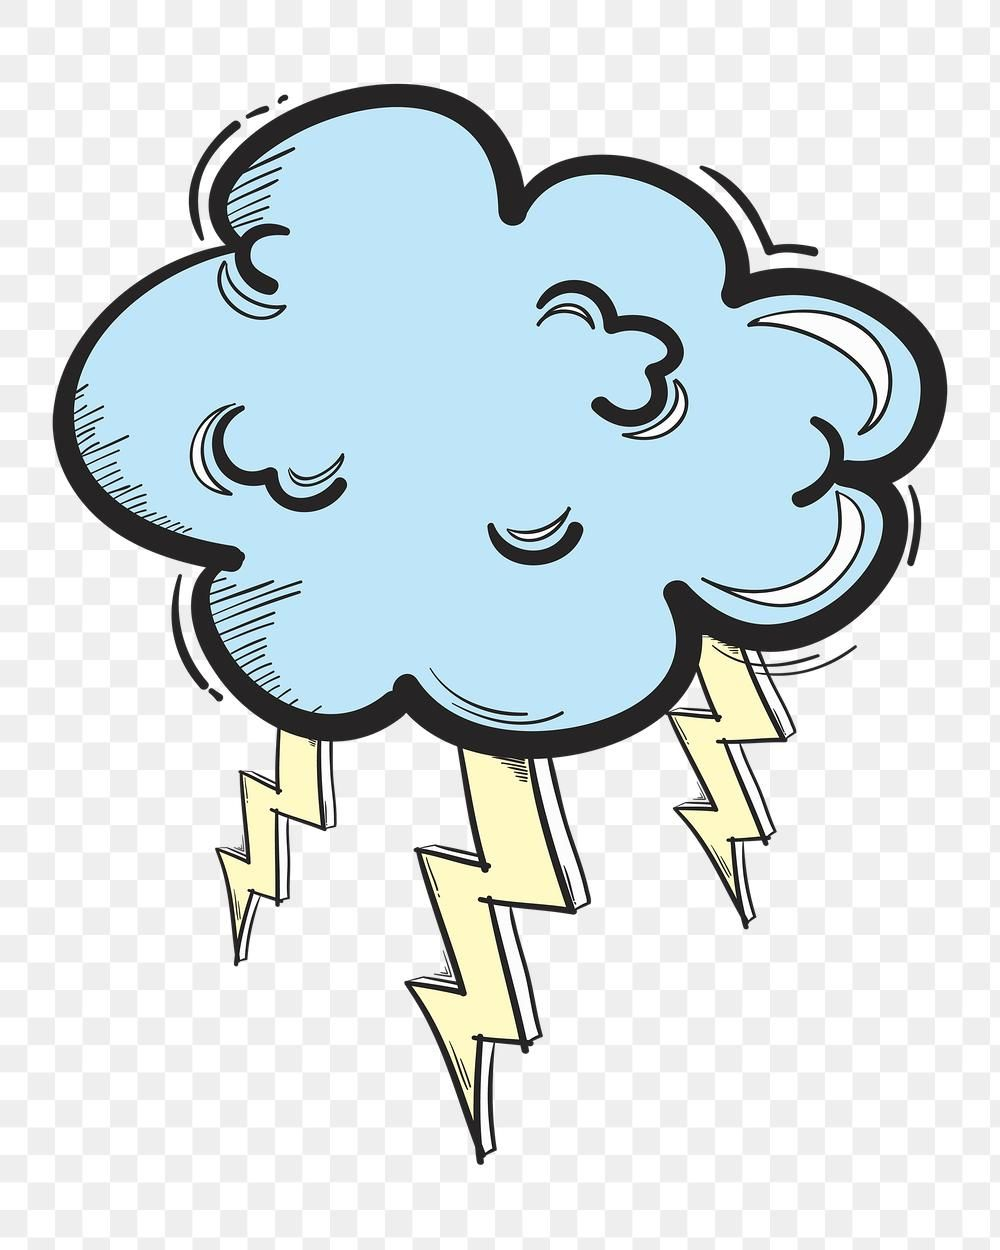 Png Thunder Cloud Cartoon Doodle Hand Drawn Sticker Free Image By Rawpixel Com Neung How To Draw Hands Cute Doodles Free Illustrations